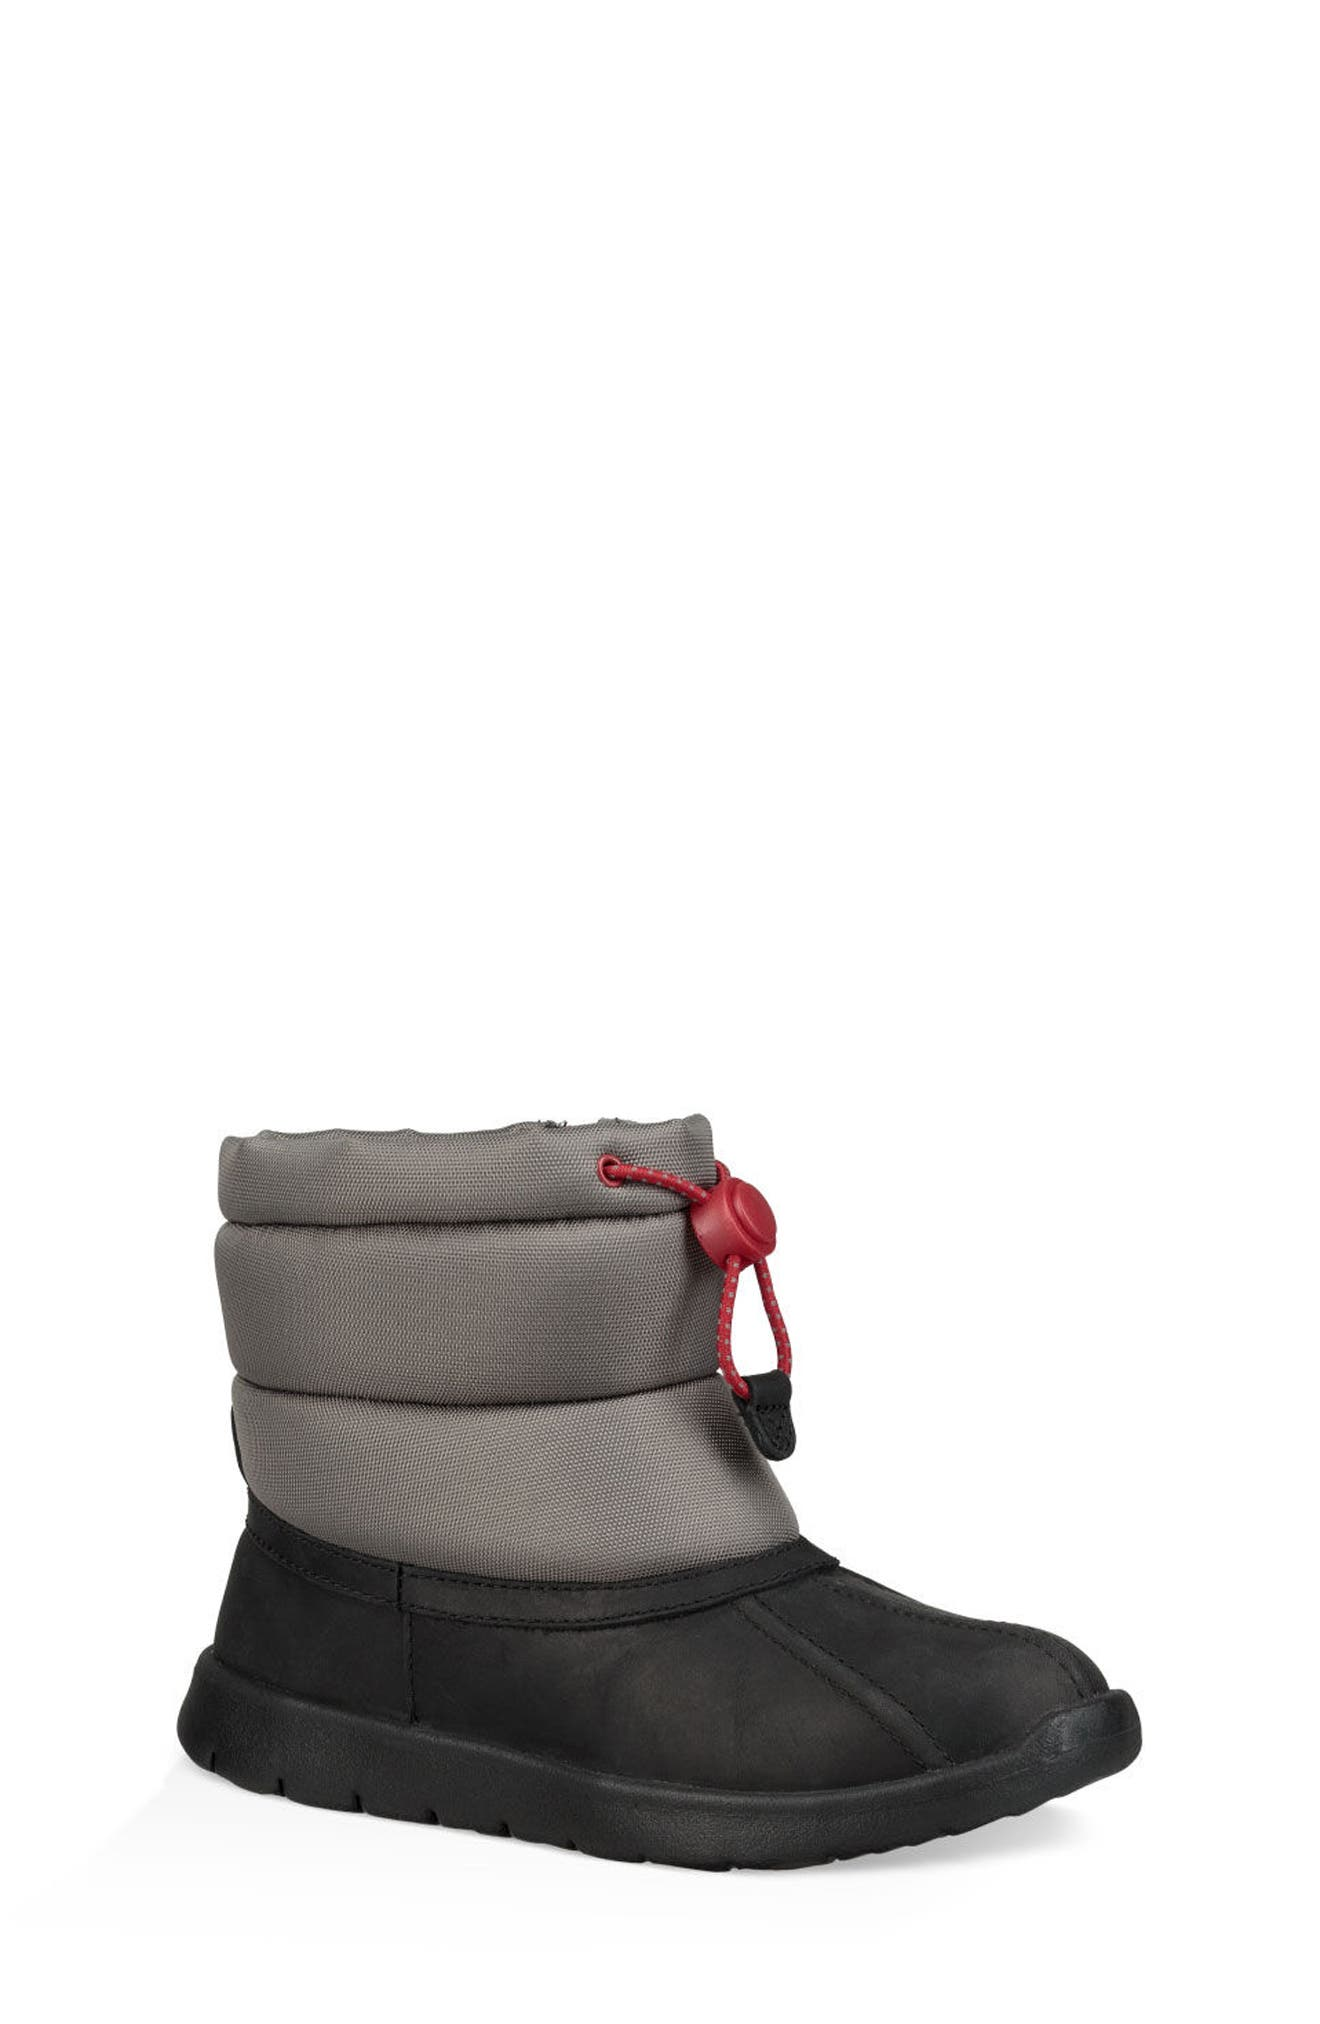 Puffer Winter Boot,                         Main,                         color, BLACK